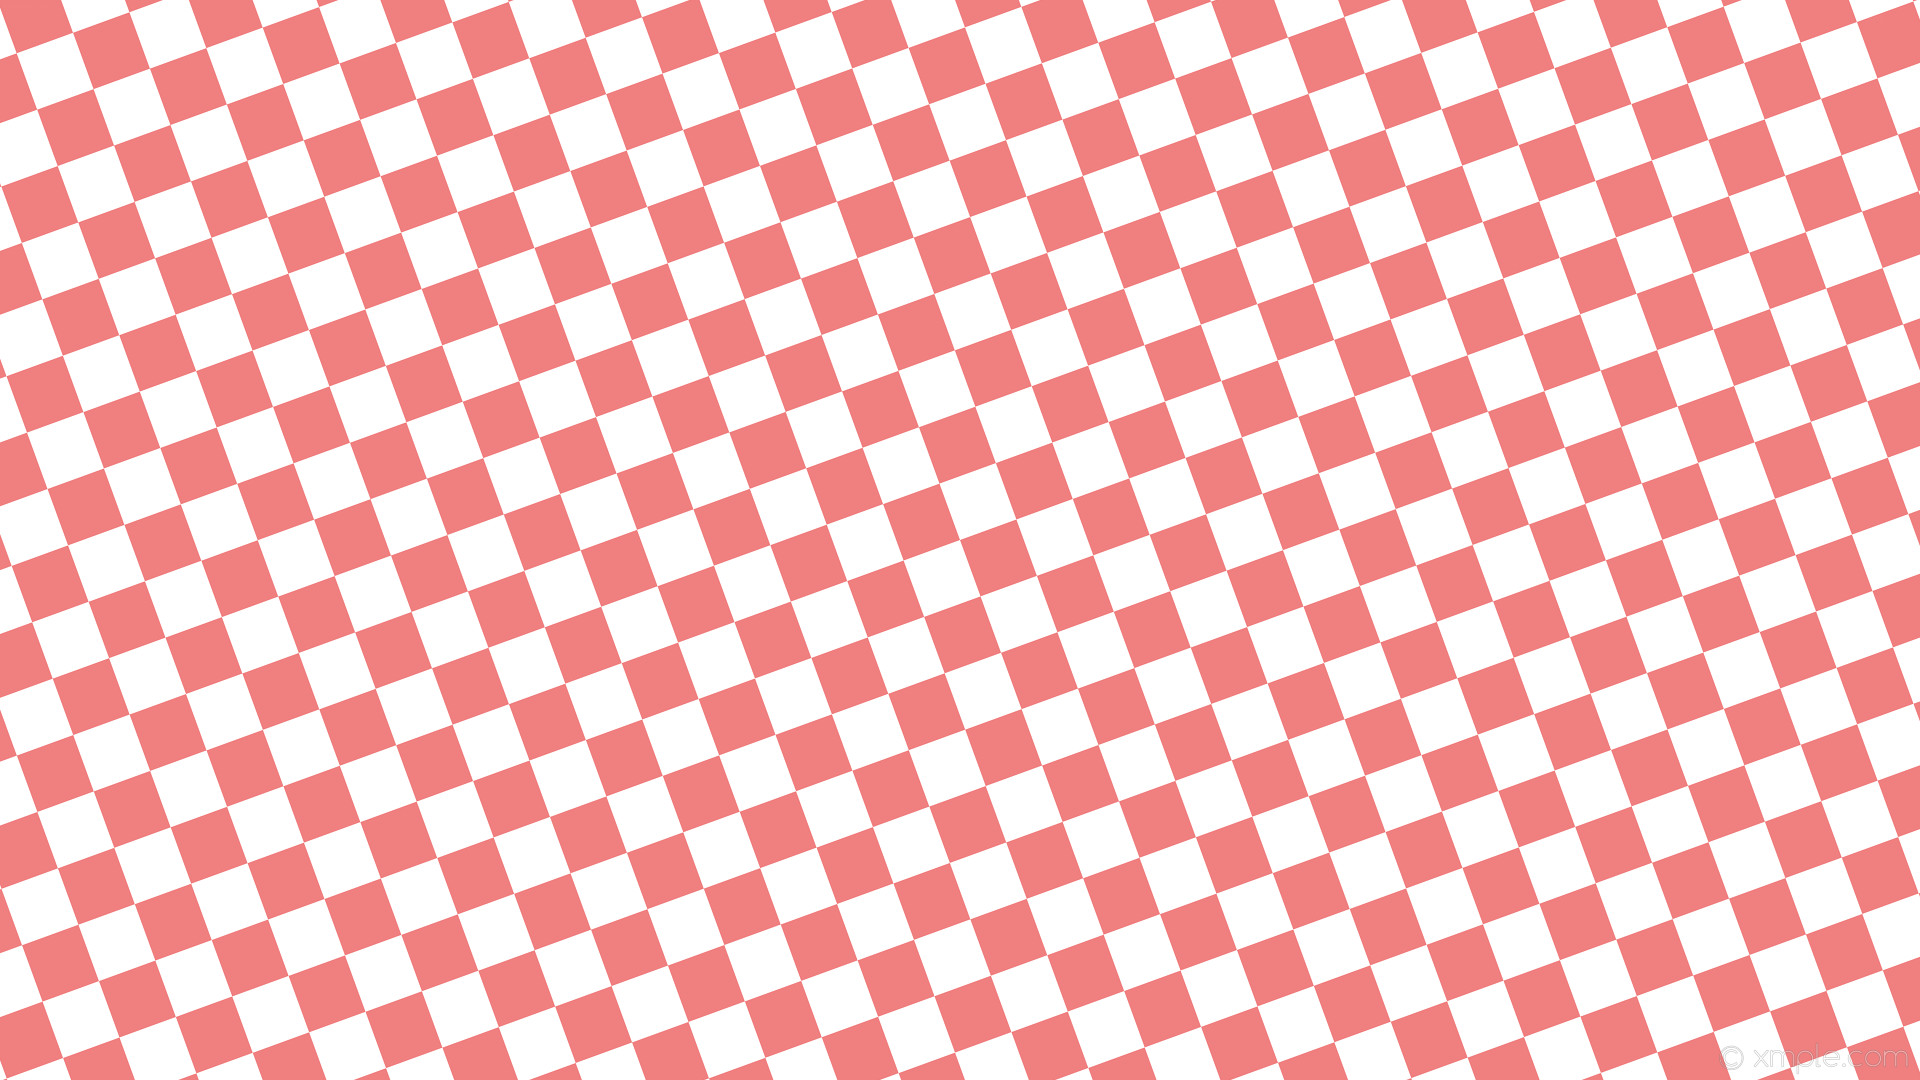 1920x1080 wallpaper red white checkered squares light coral #f08080 #ffffff diagonal  20° 60px